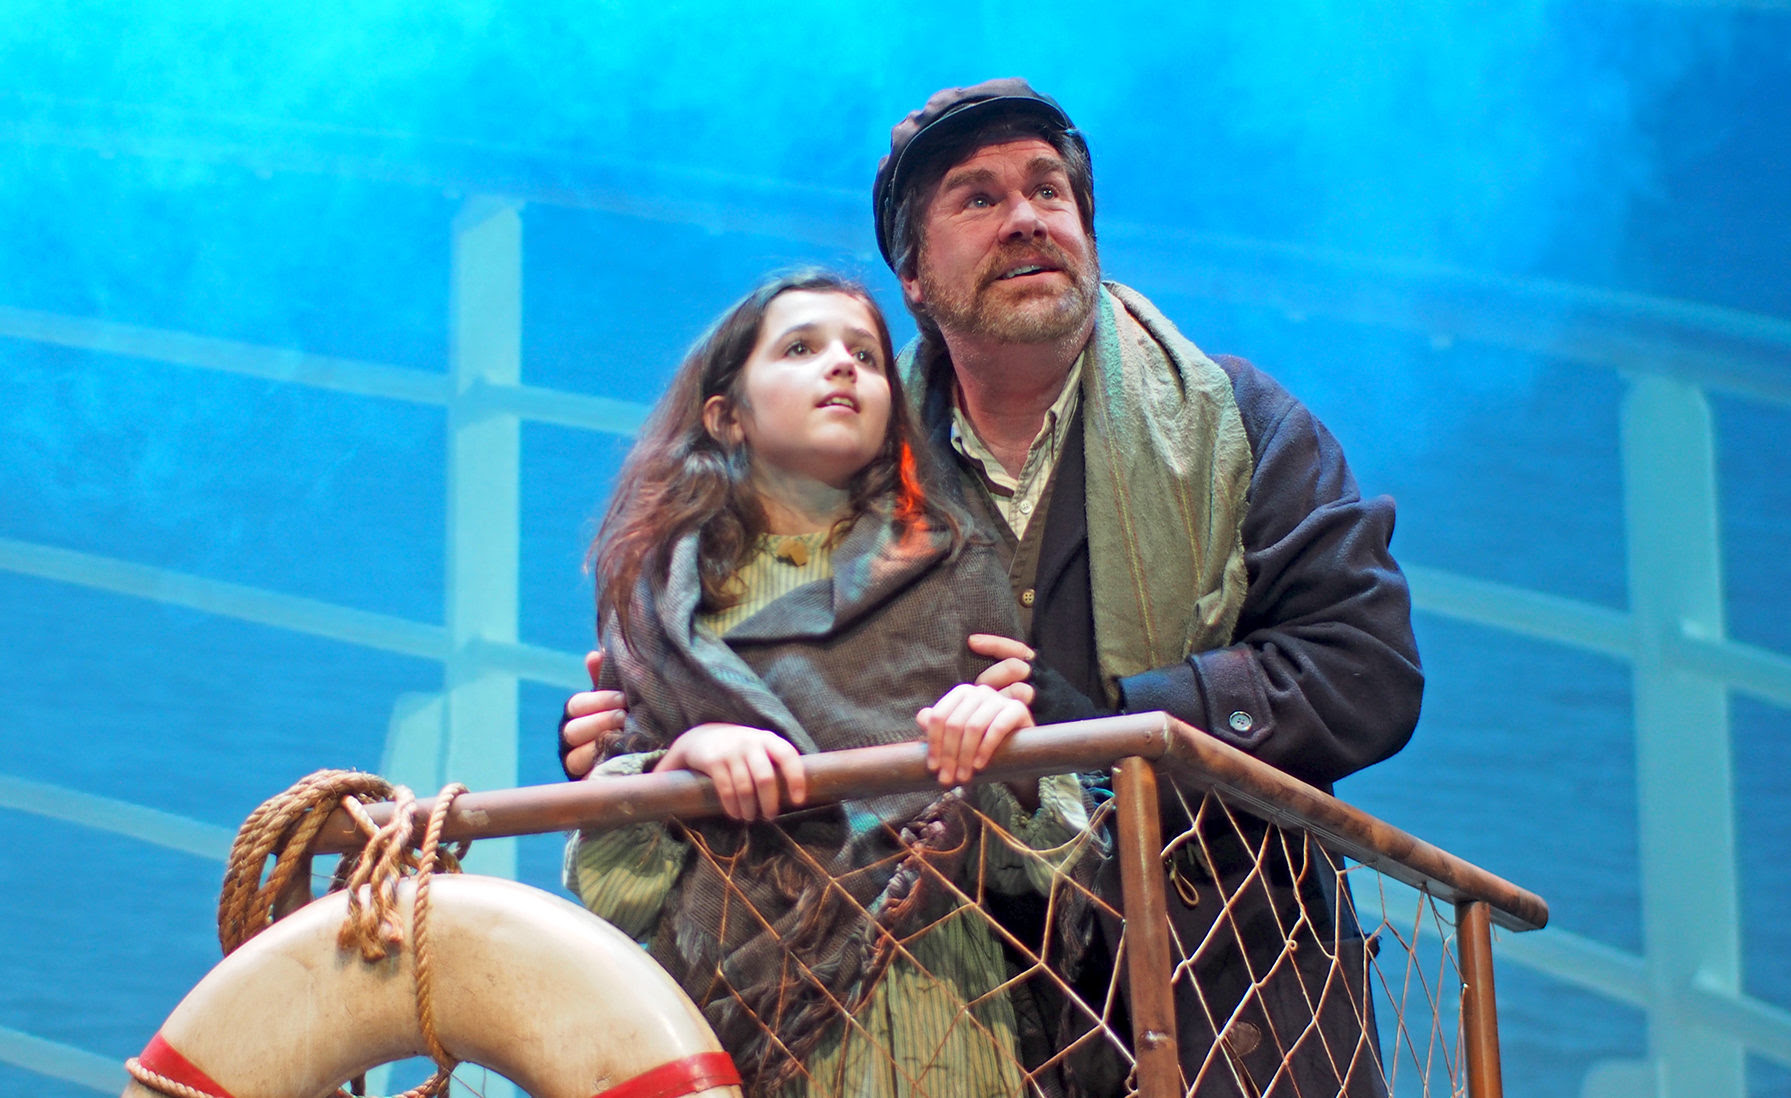 Hannah Dwyer as Little Girl with Michael Hammond as her father Tateh